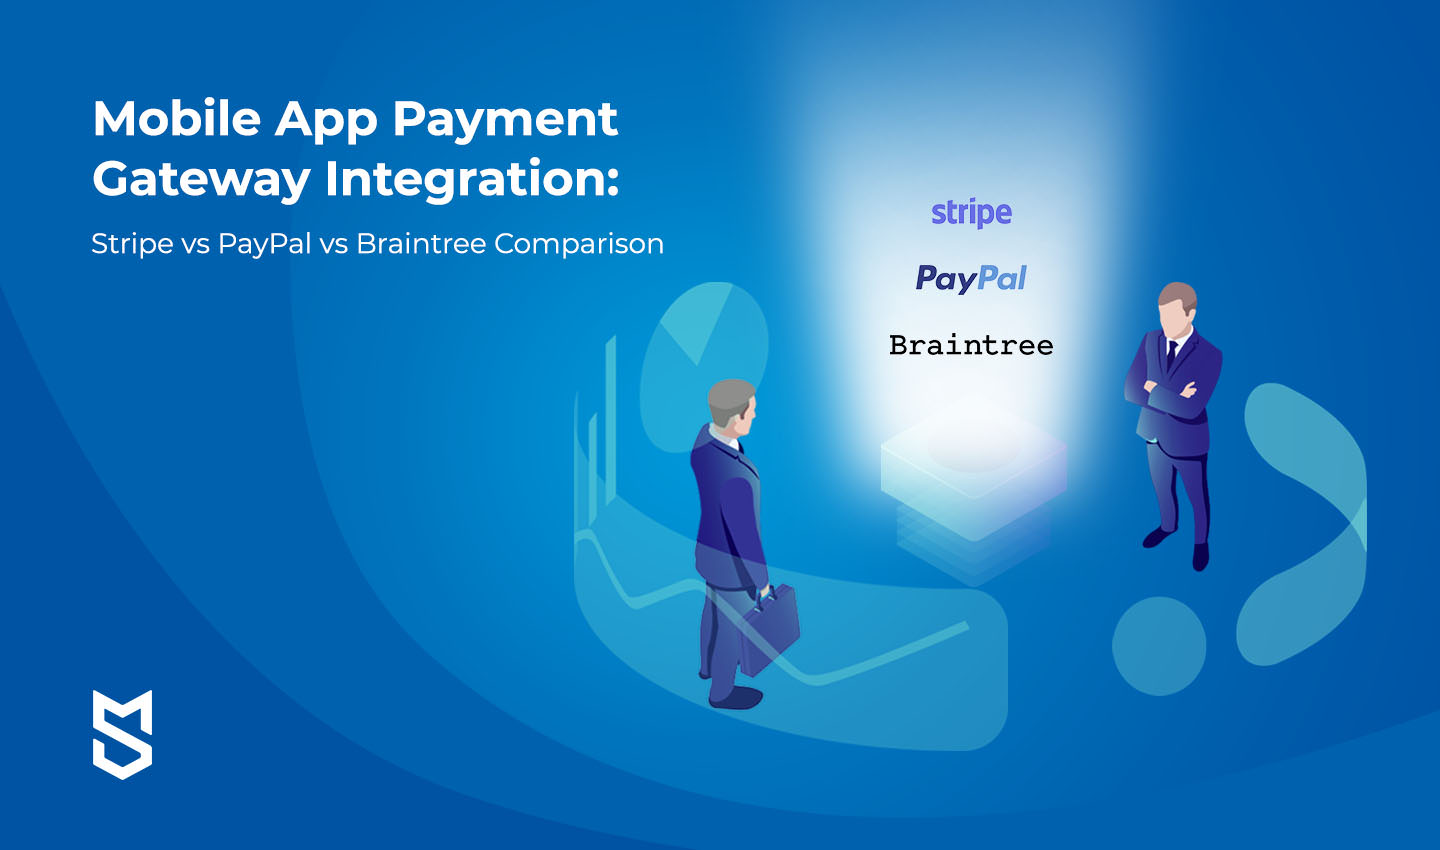 Mobile App Payment Gateway Integration: Stripe vs PayPal vs Braintree